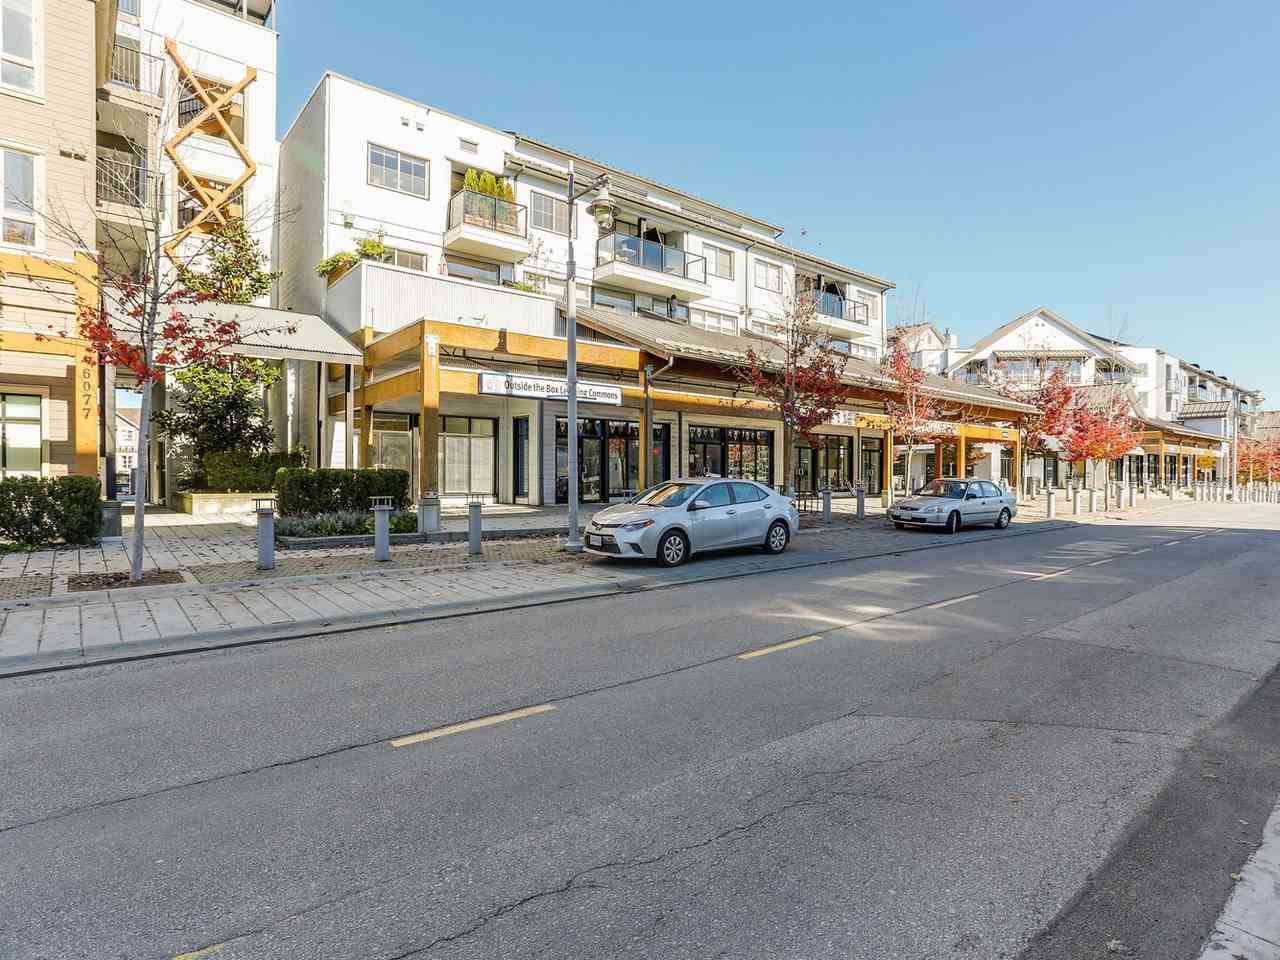 Main Photo: 308 6077 LONDON ROAD in Richmond: Steveston South Condo for sale : MLS®# R2144444